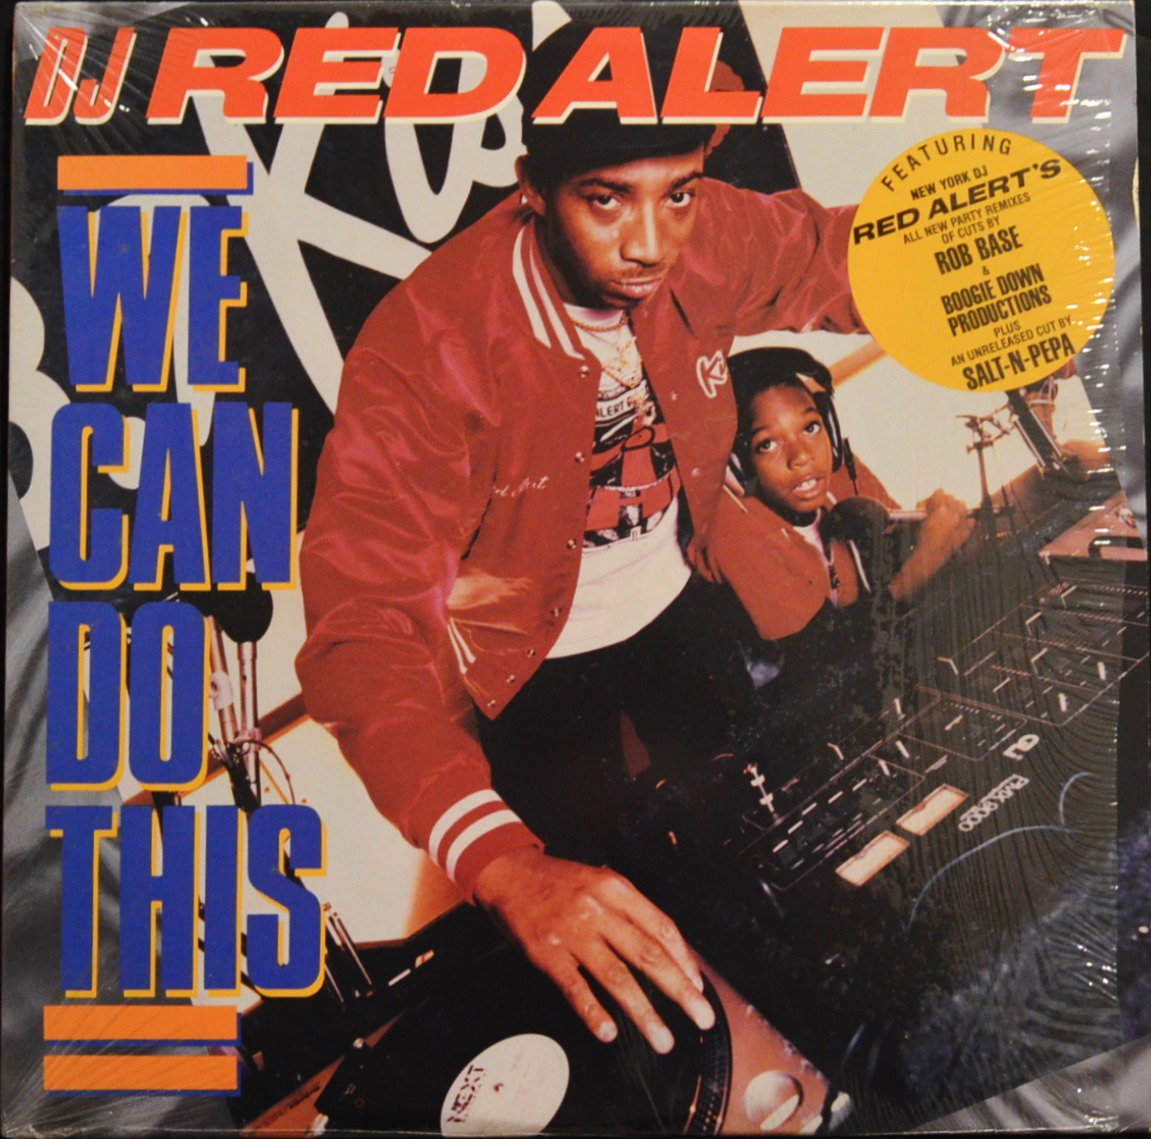 DJ RED ALERT / WE CAN DO THIS (2LP)